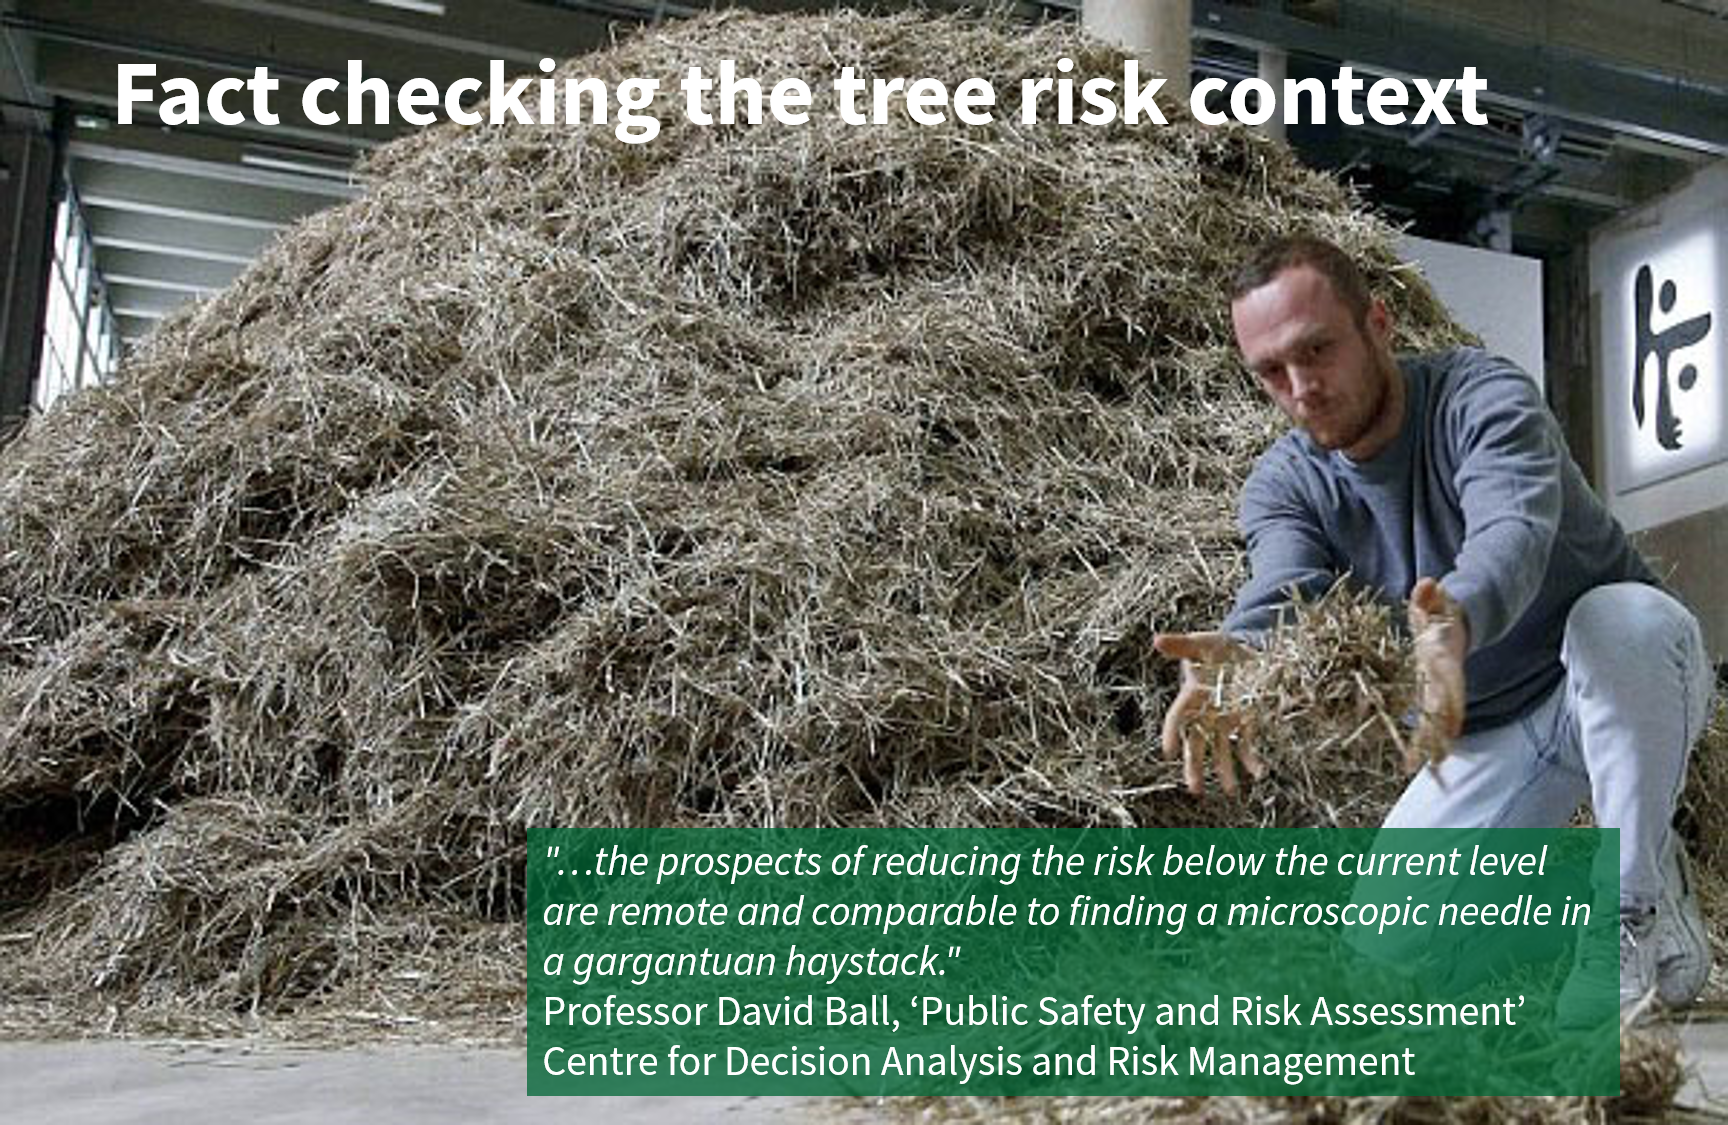 Tree risk management | Finding a microscopic need in a gargantuan haystack